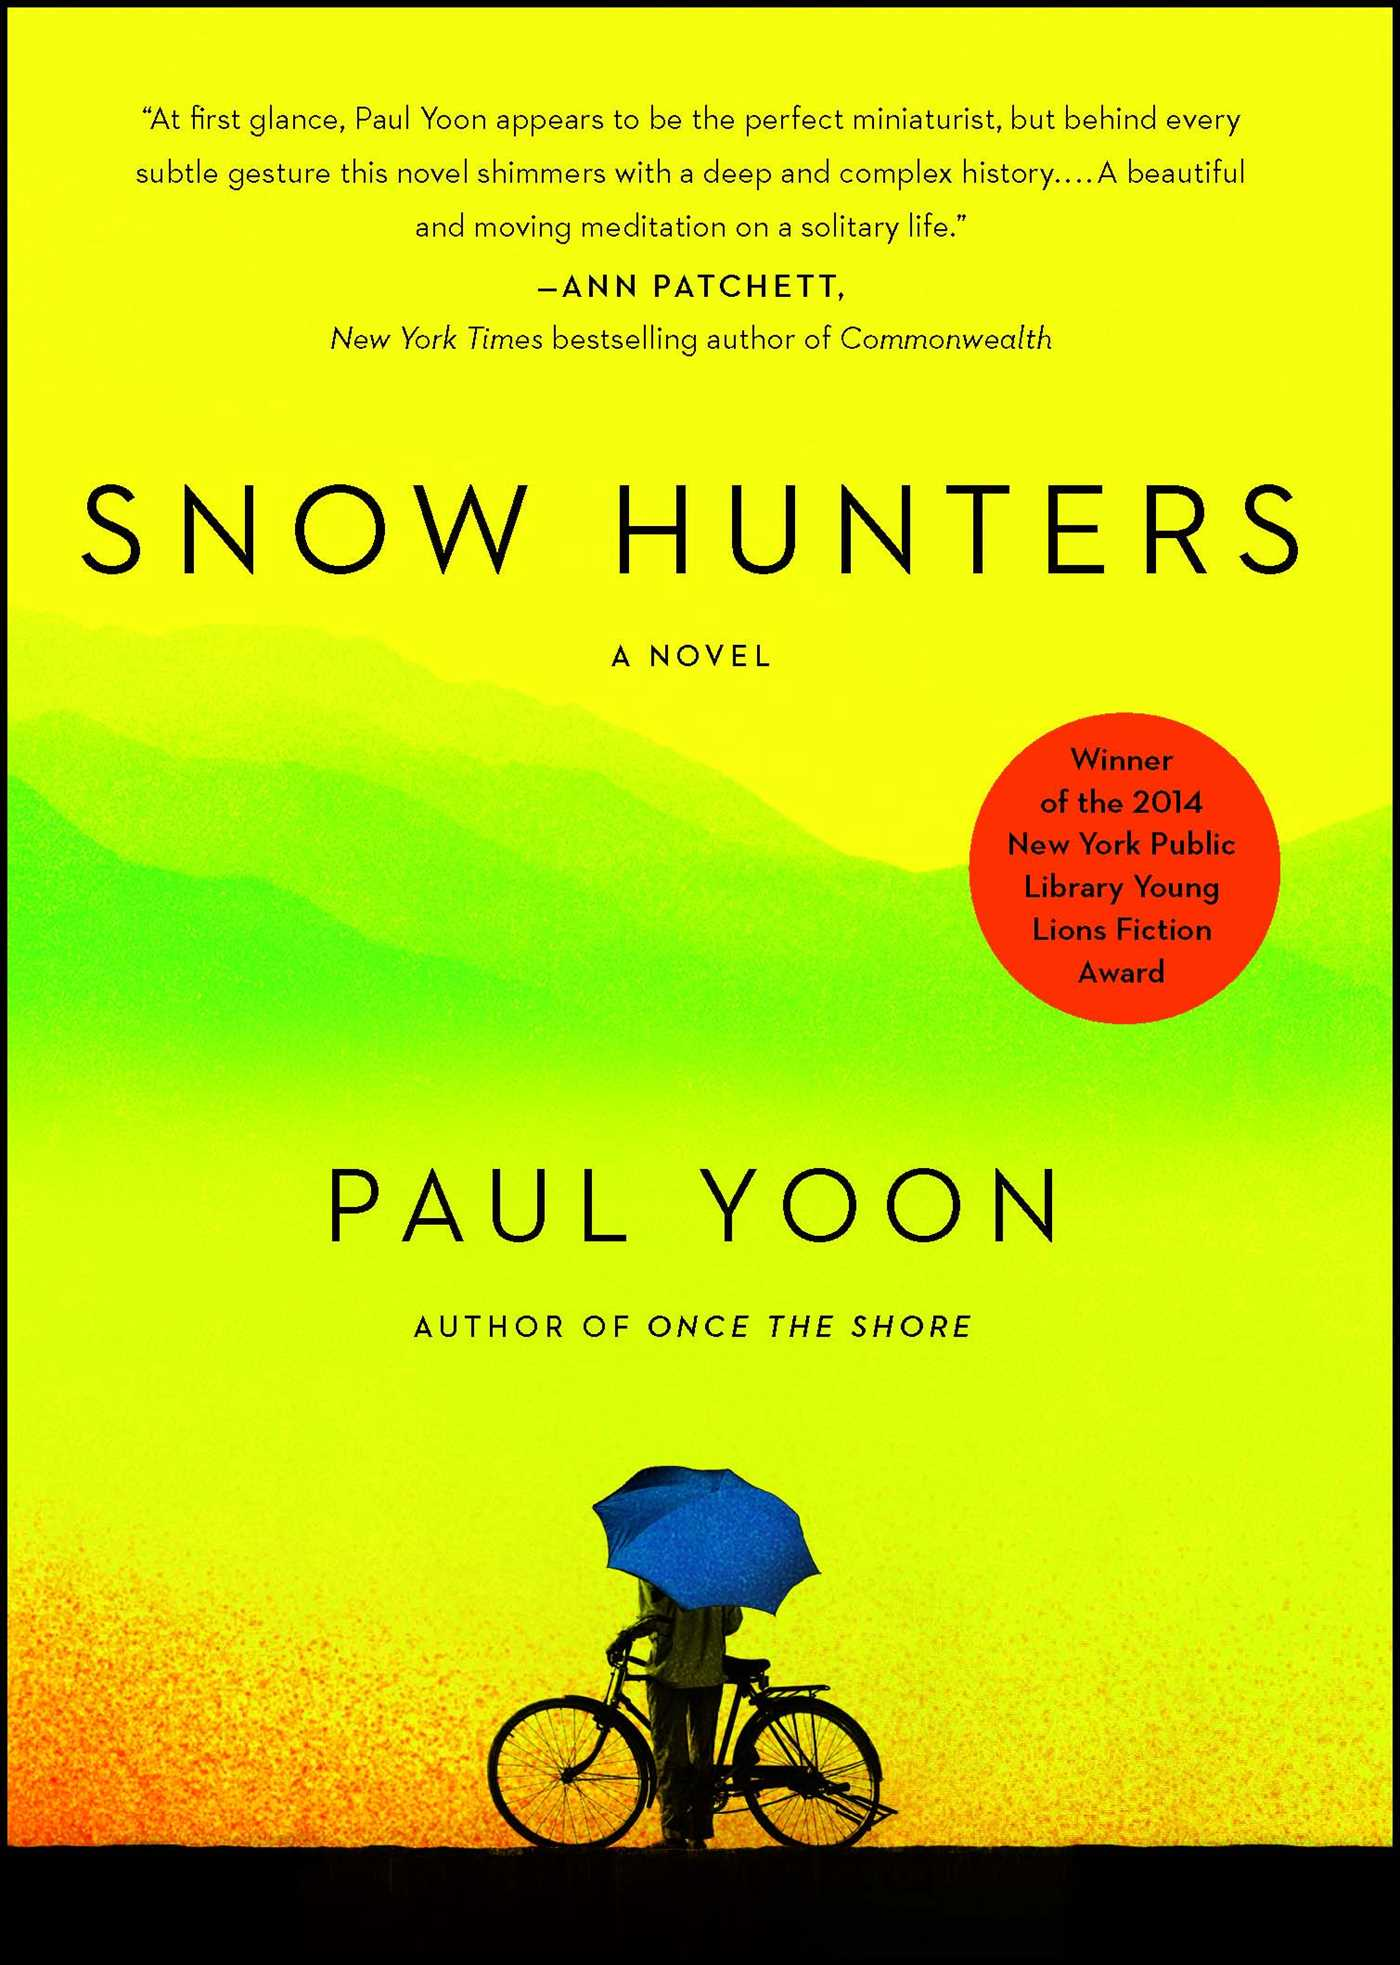 Snow-hunters-9781476714820_hr